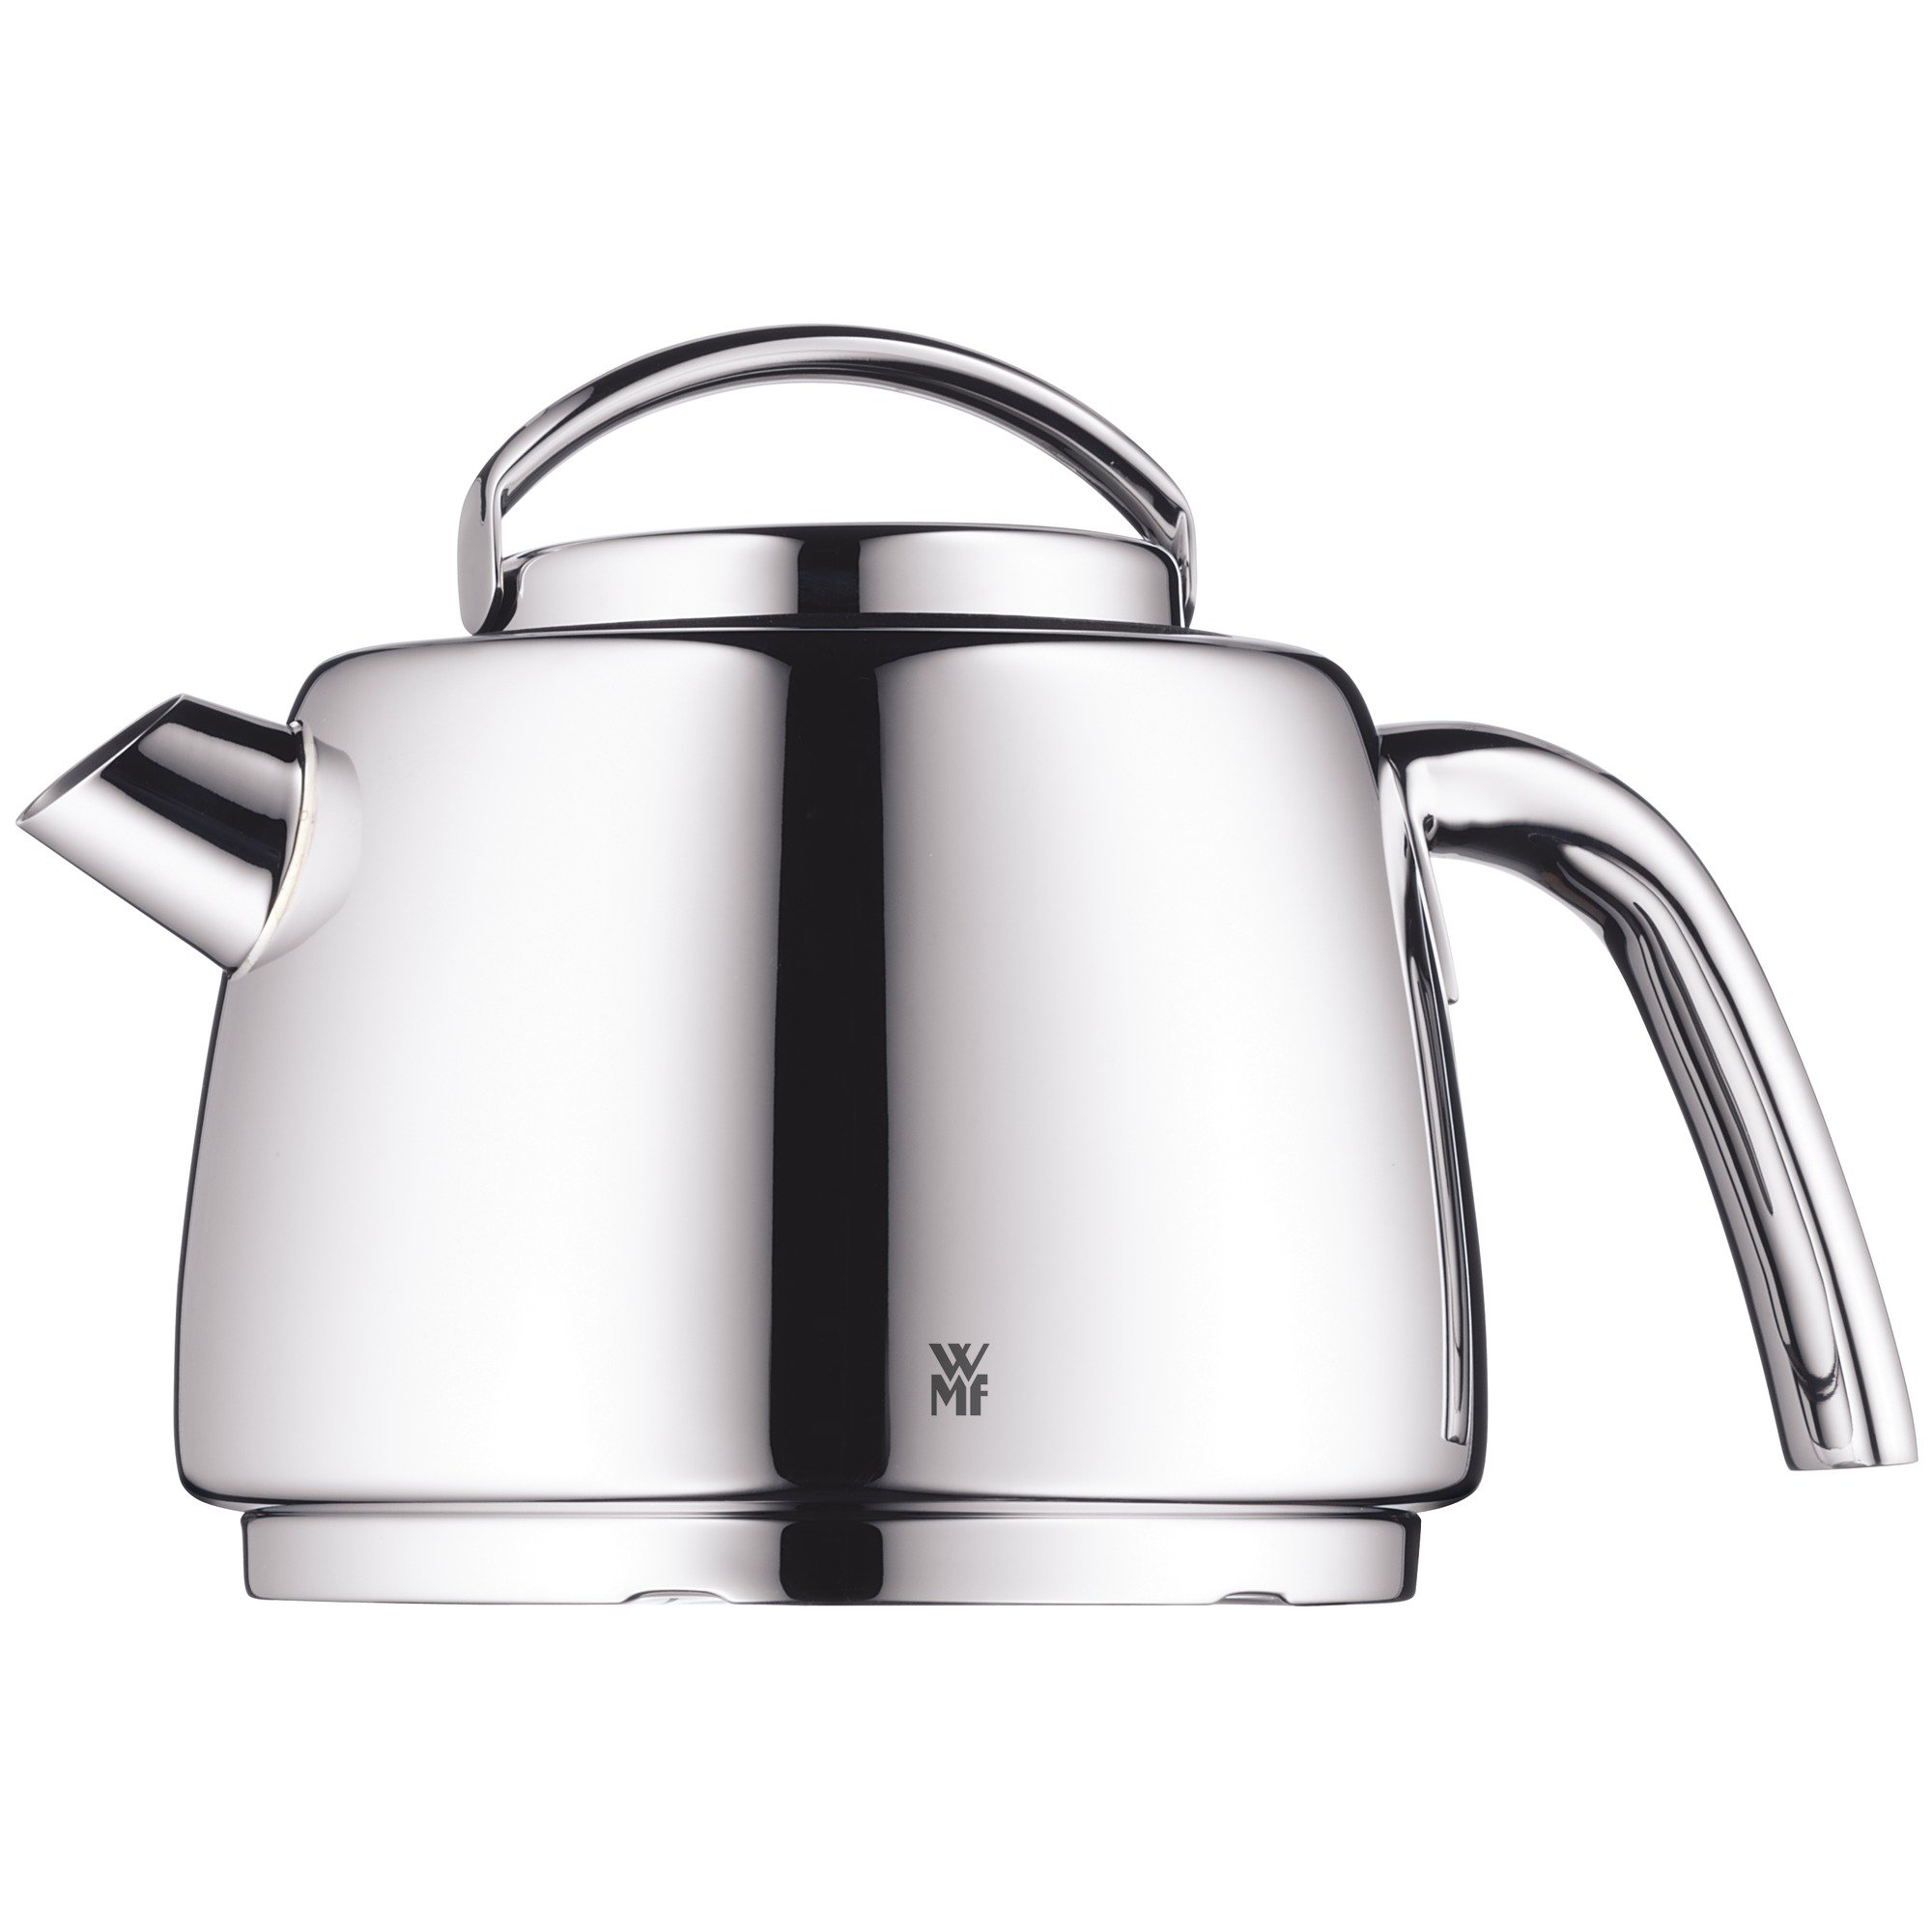 WMF 650996040Kettle Stainless Steel